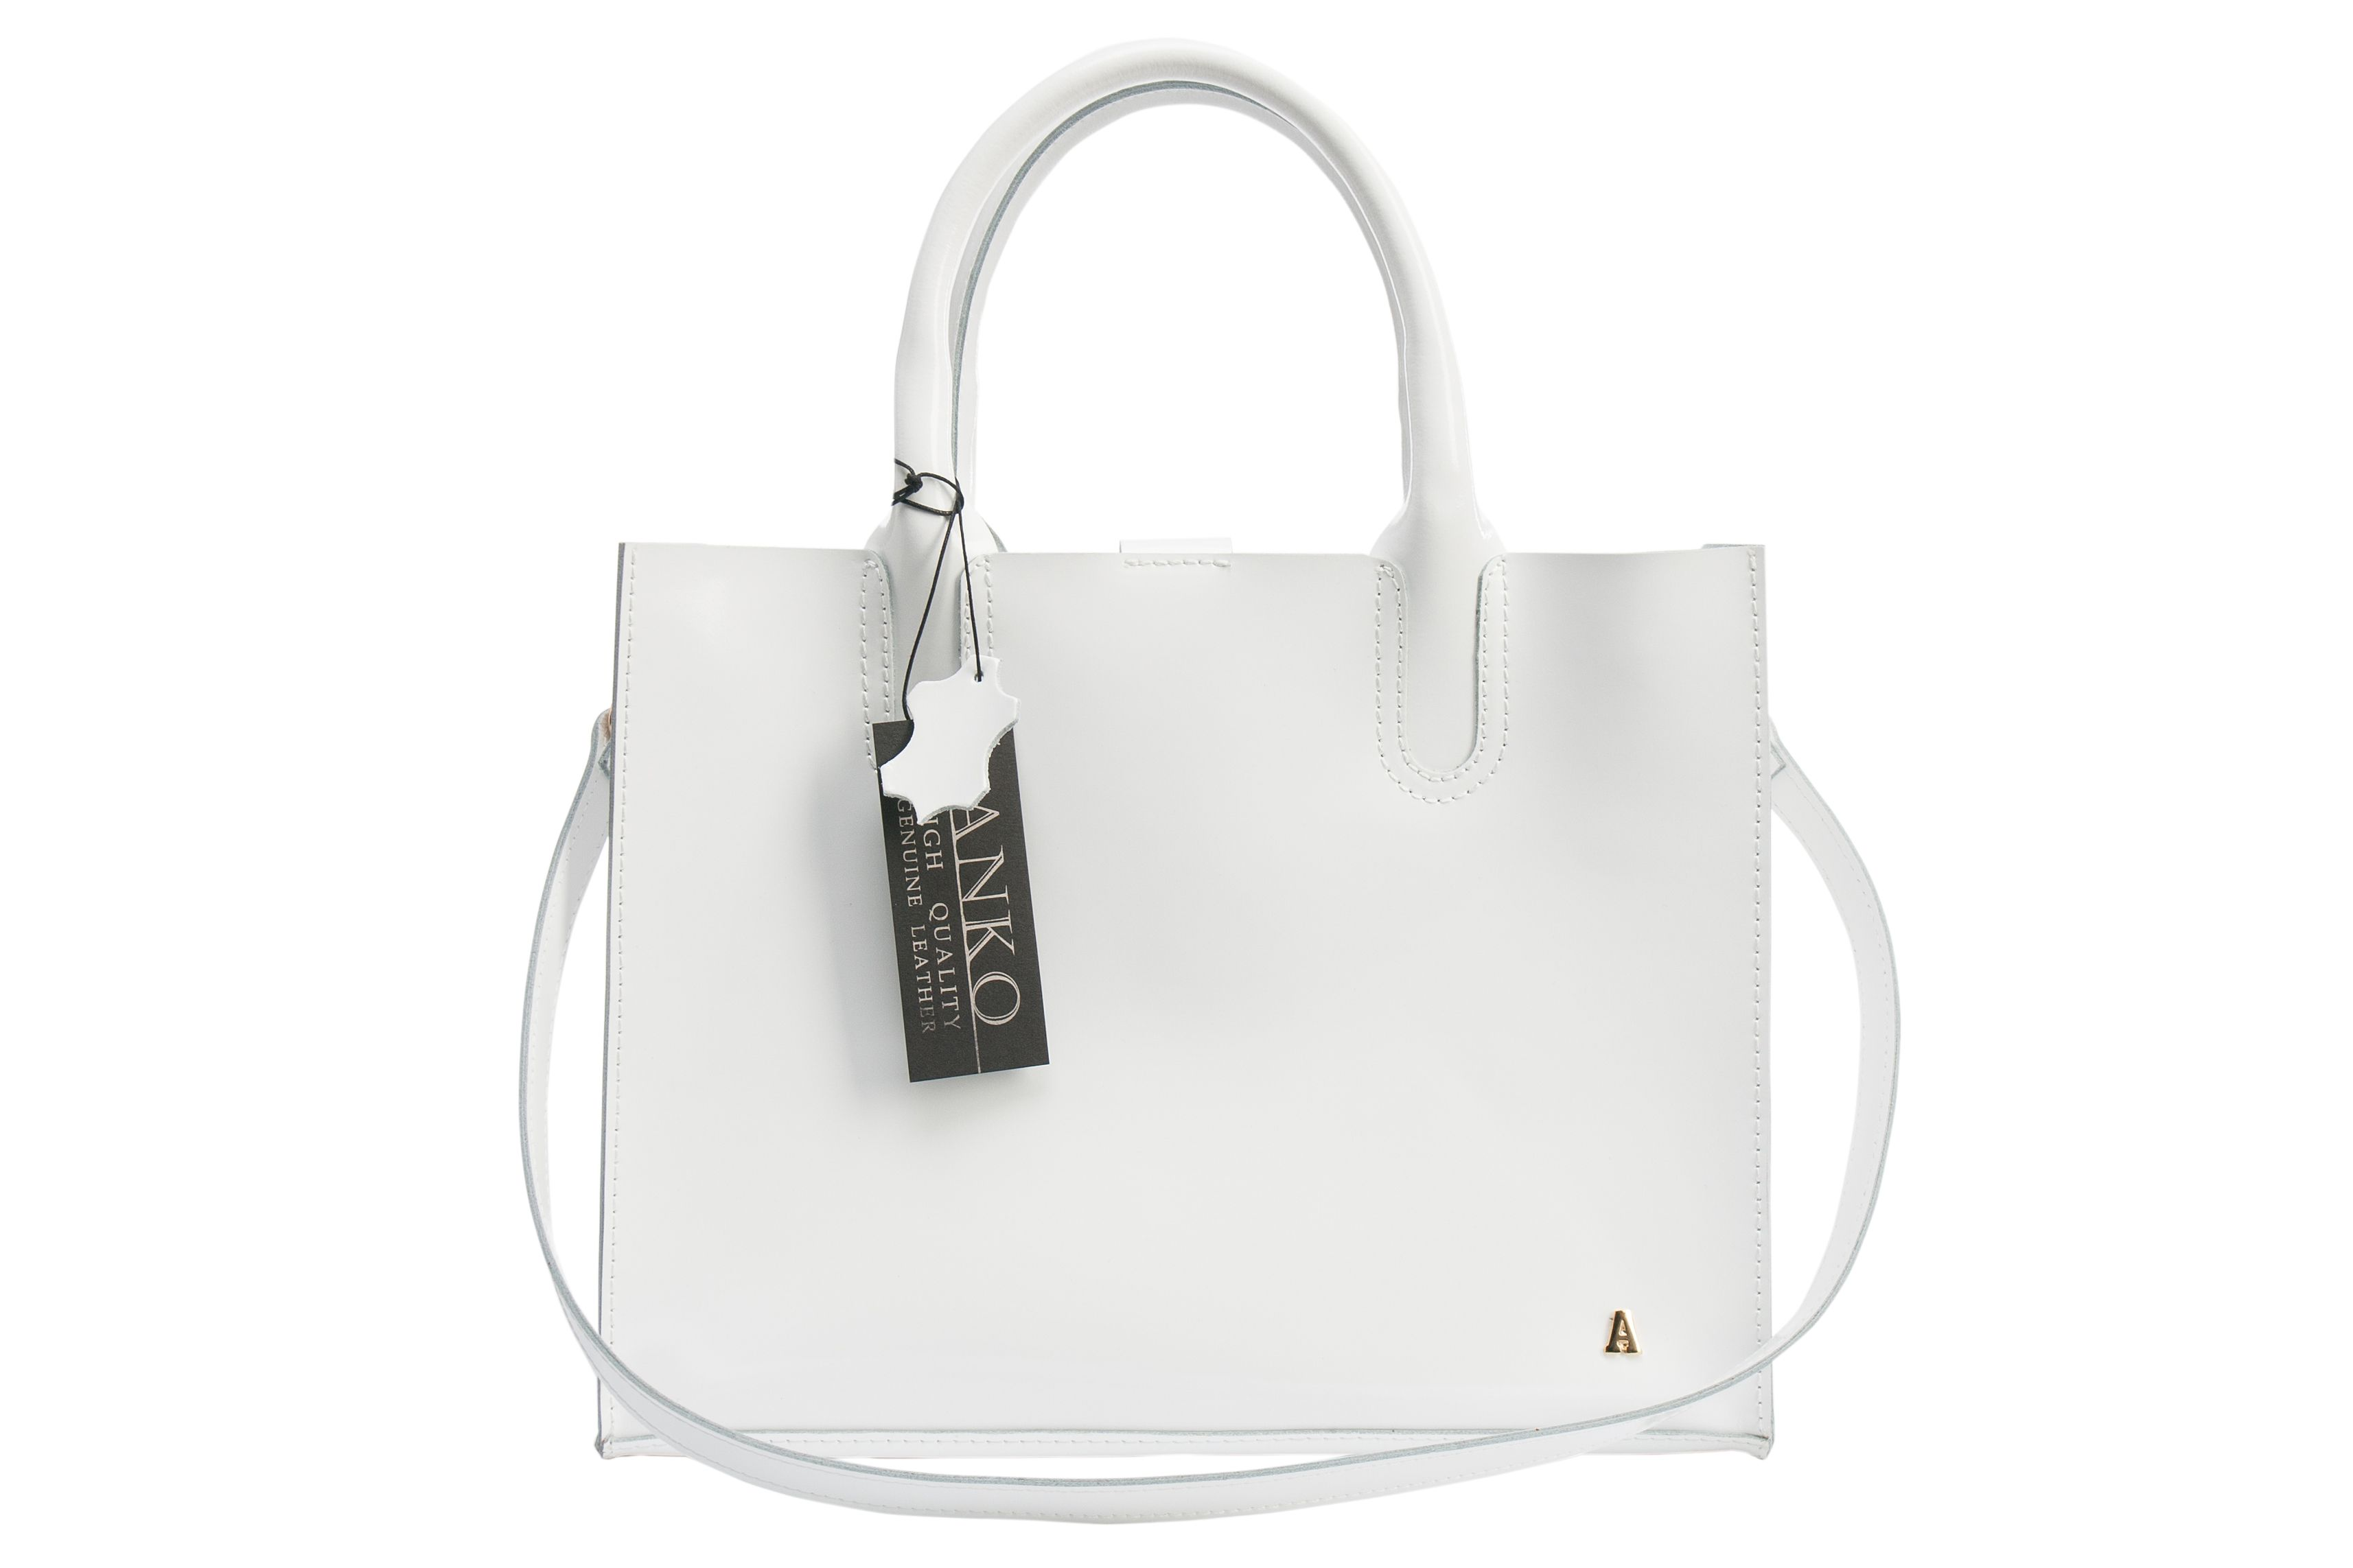 95bbe2ea7ffe How Low Can White Perfect Bags Go      149.99  FREE WORLDWIDE. Visit